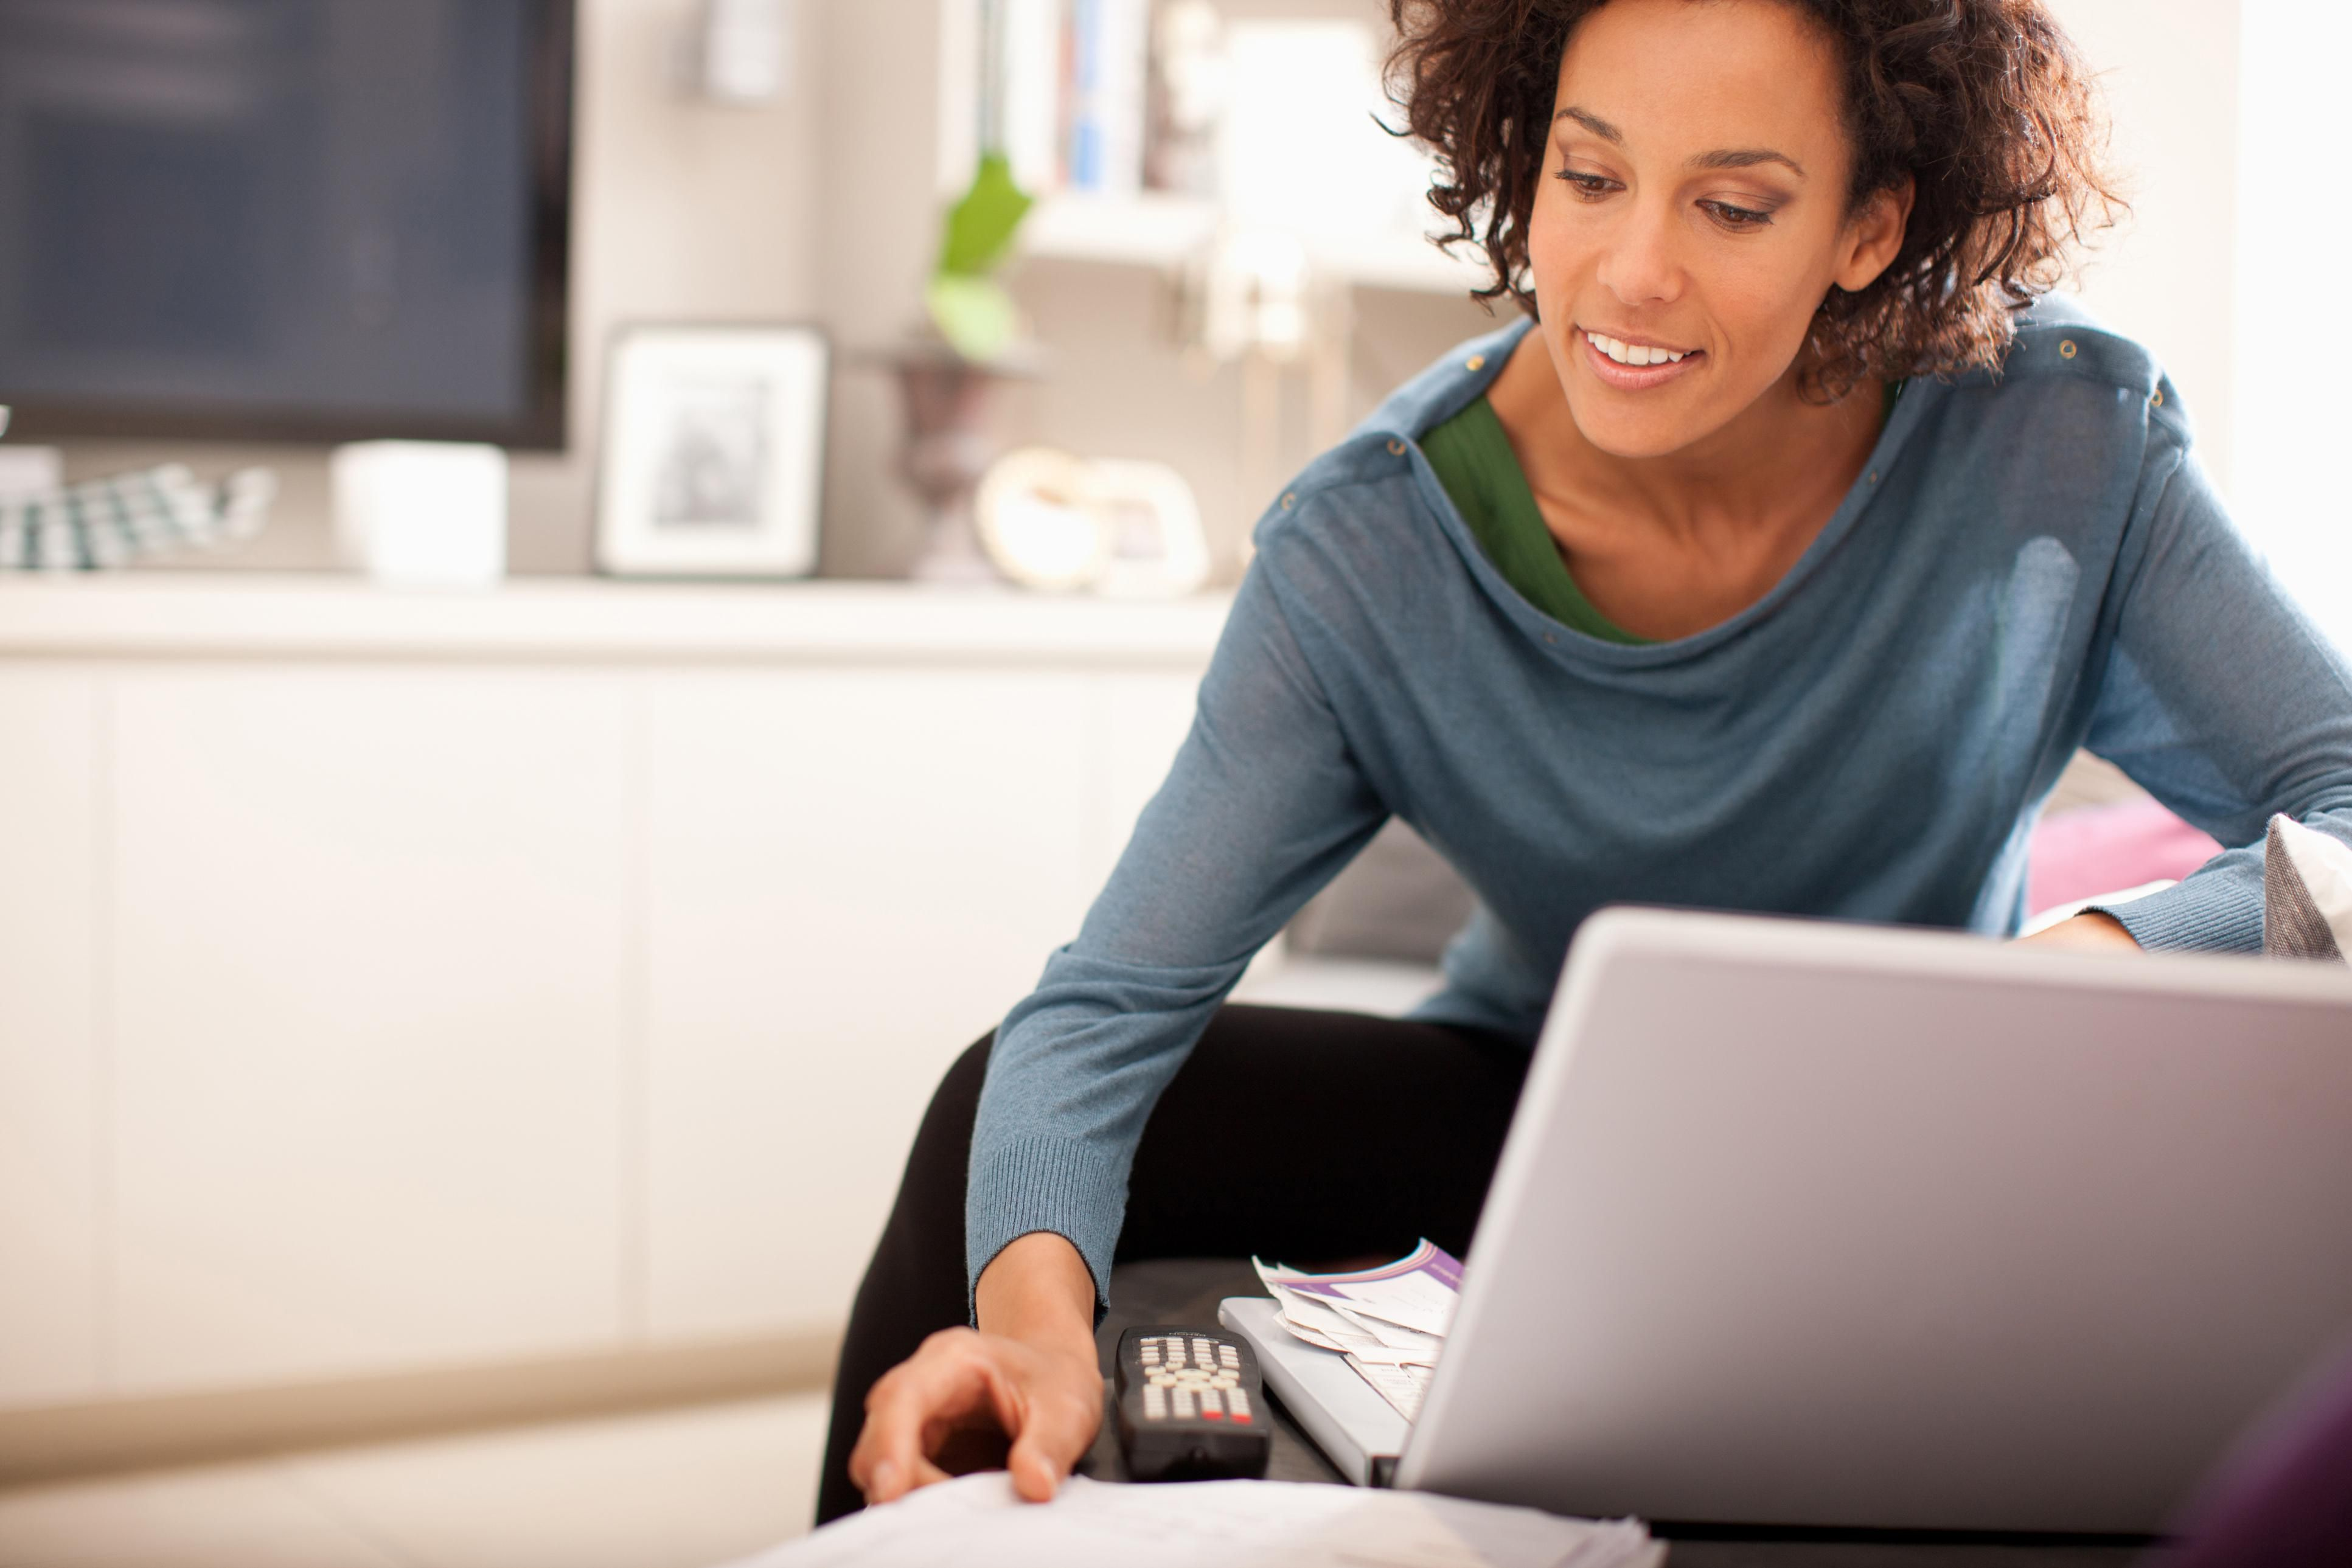 Work at home job profile instructional designer for Instructional designer jobs work from home